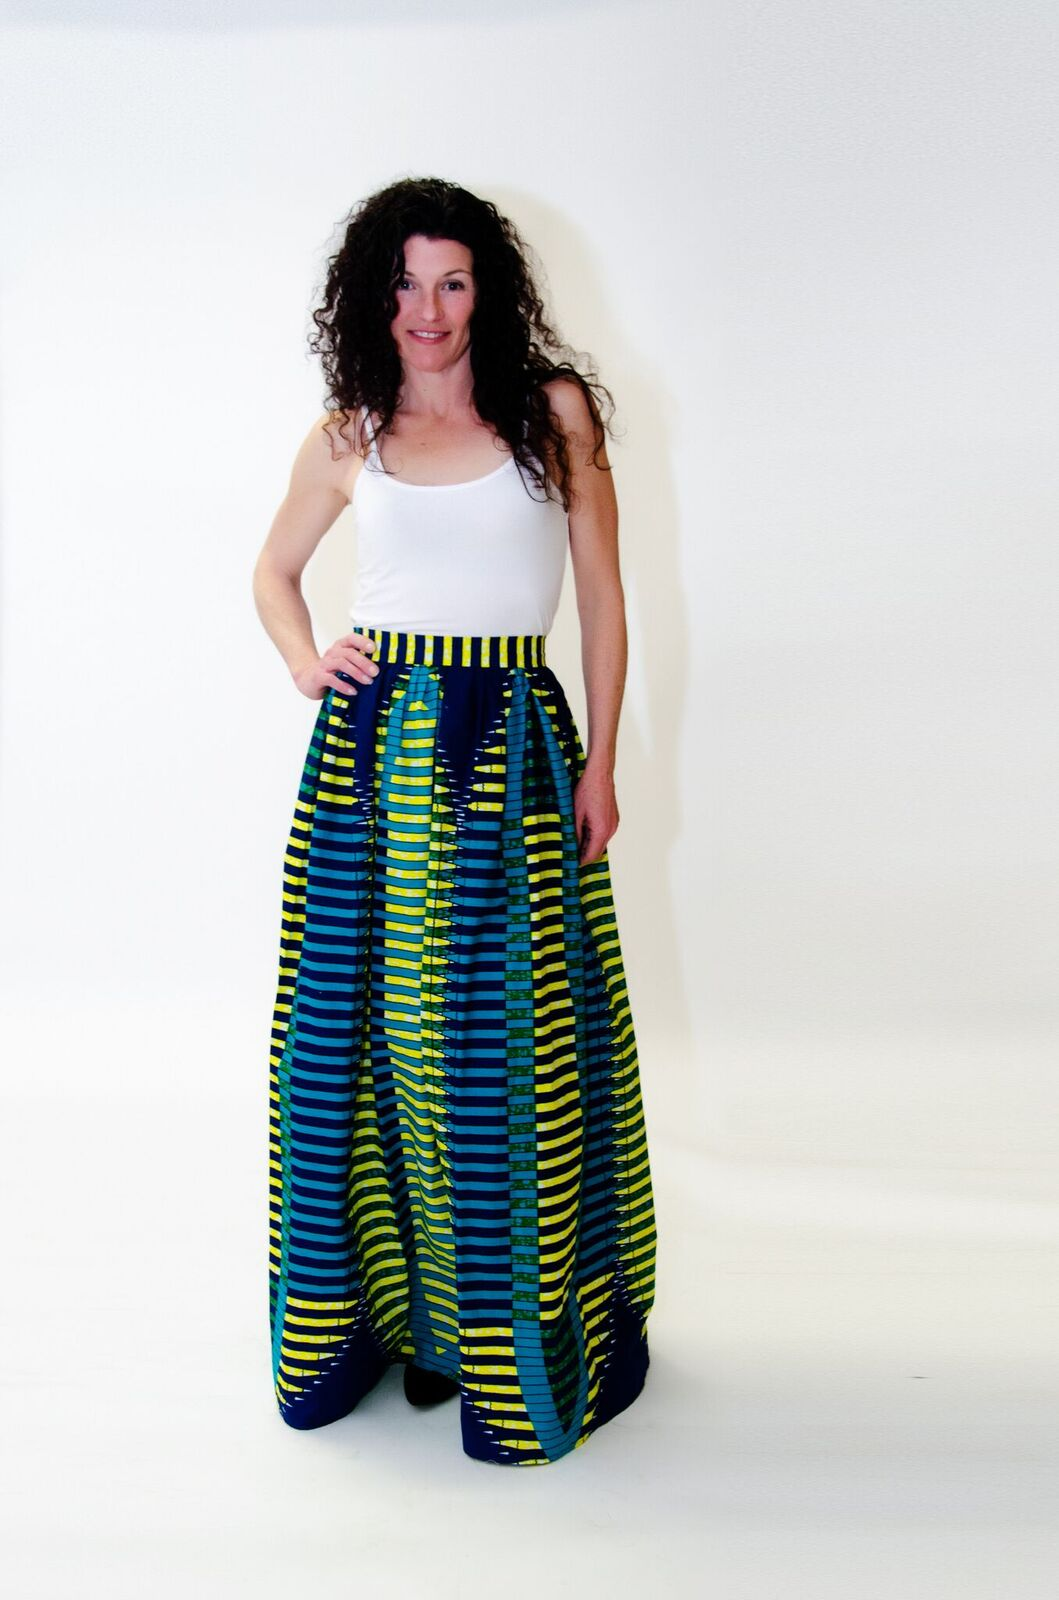 b354ec38b43 How To Style High Waisted Maxi Skirts - Gomes Weine AG